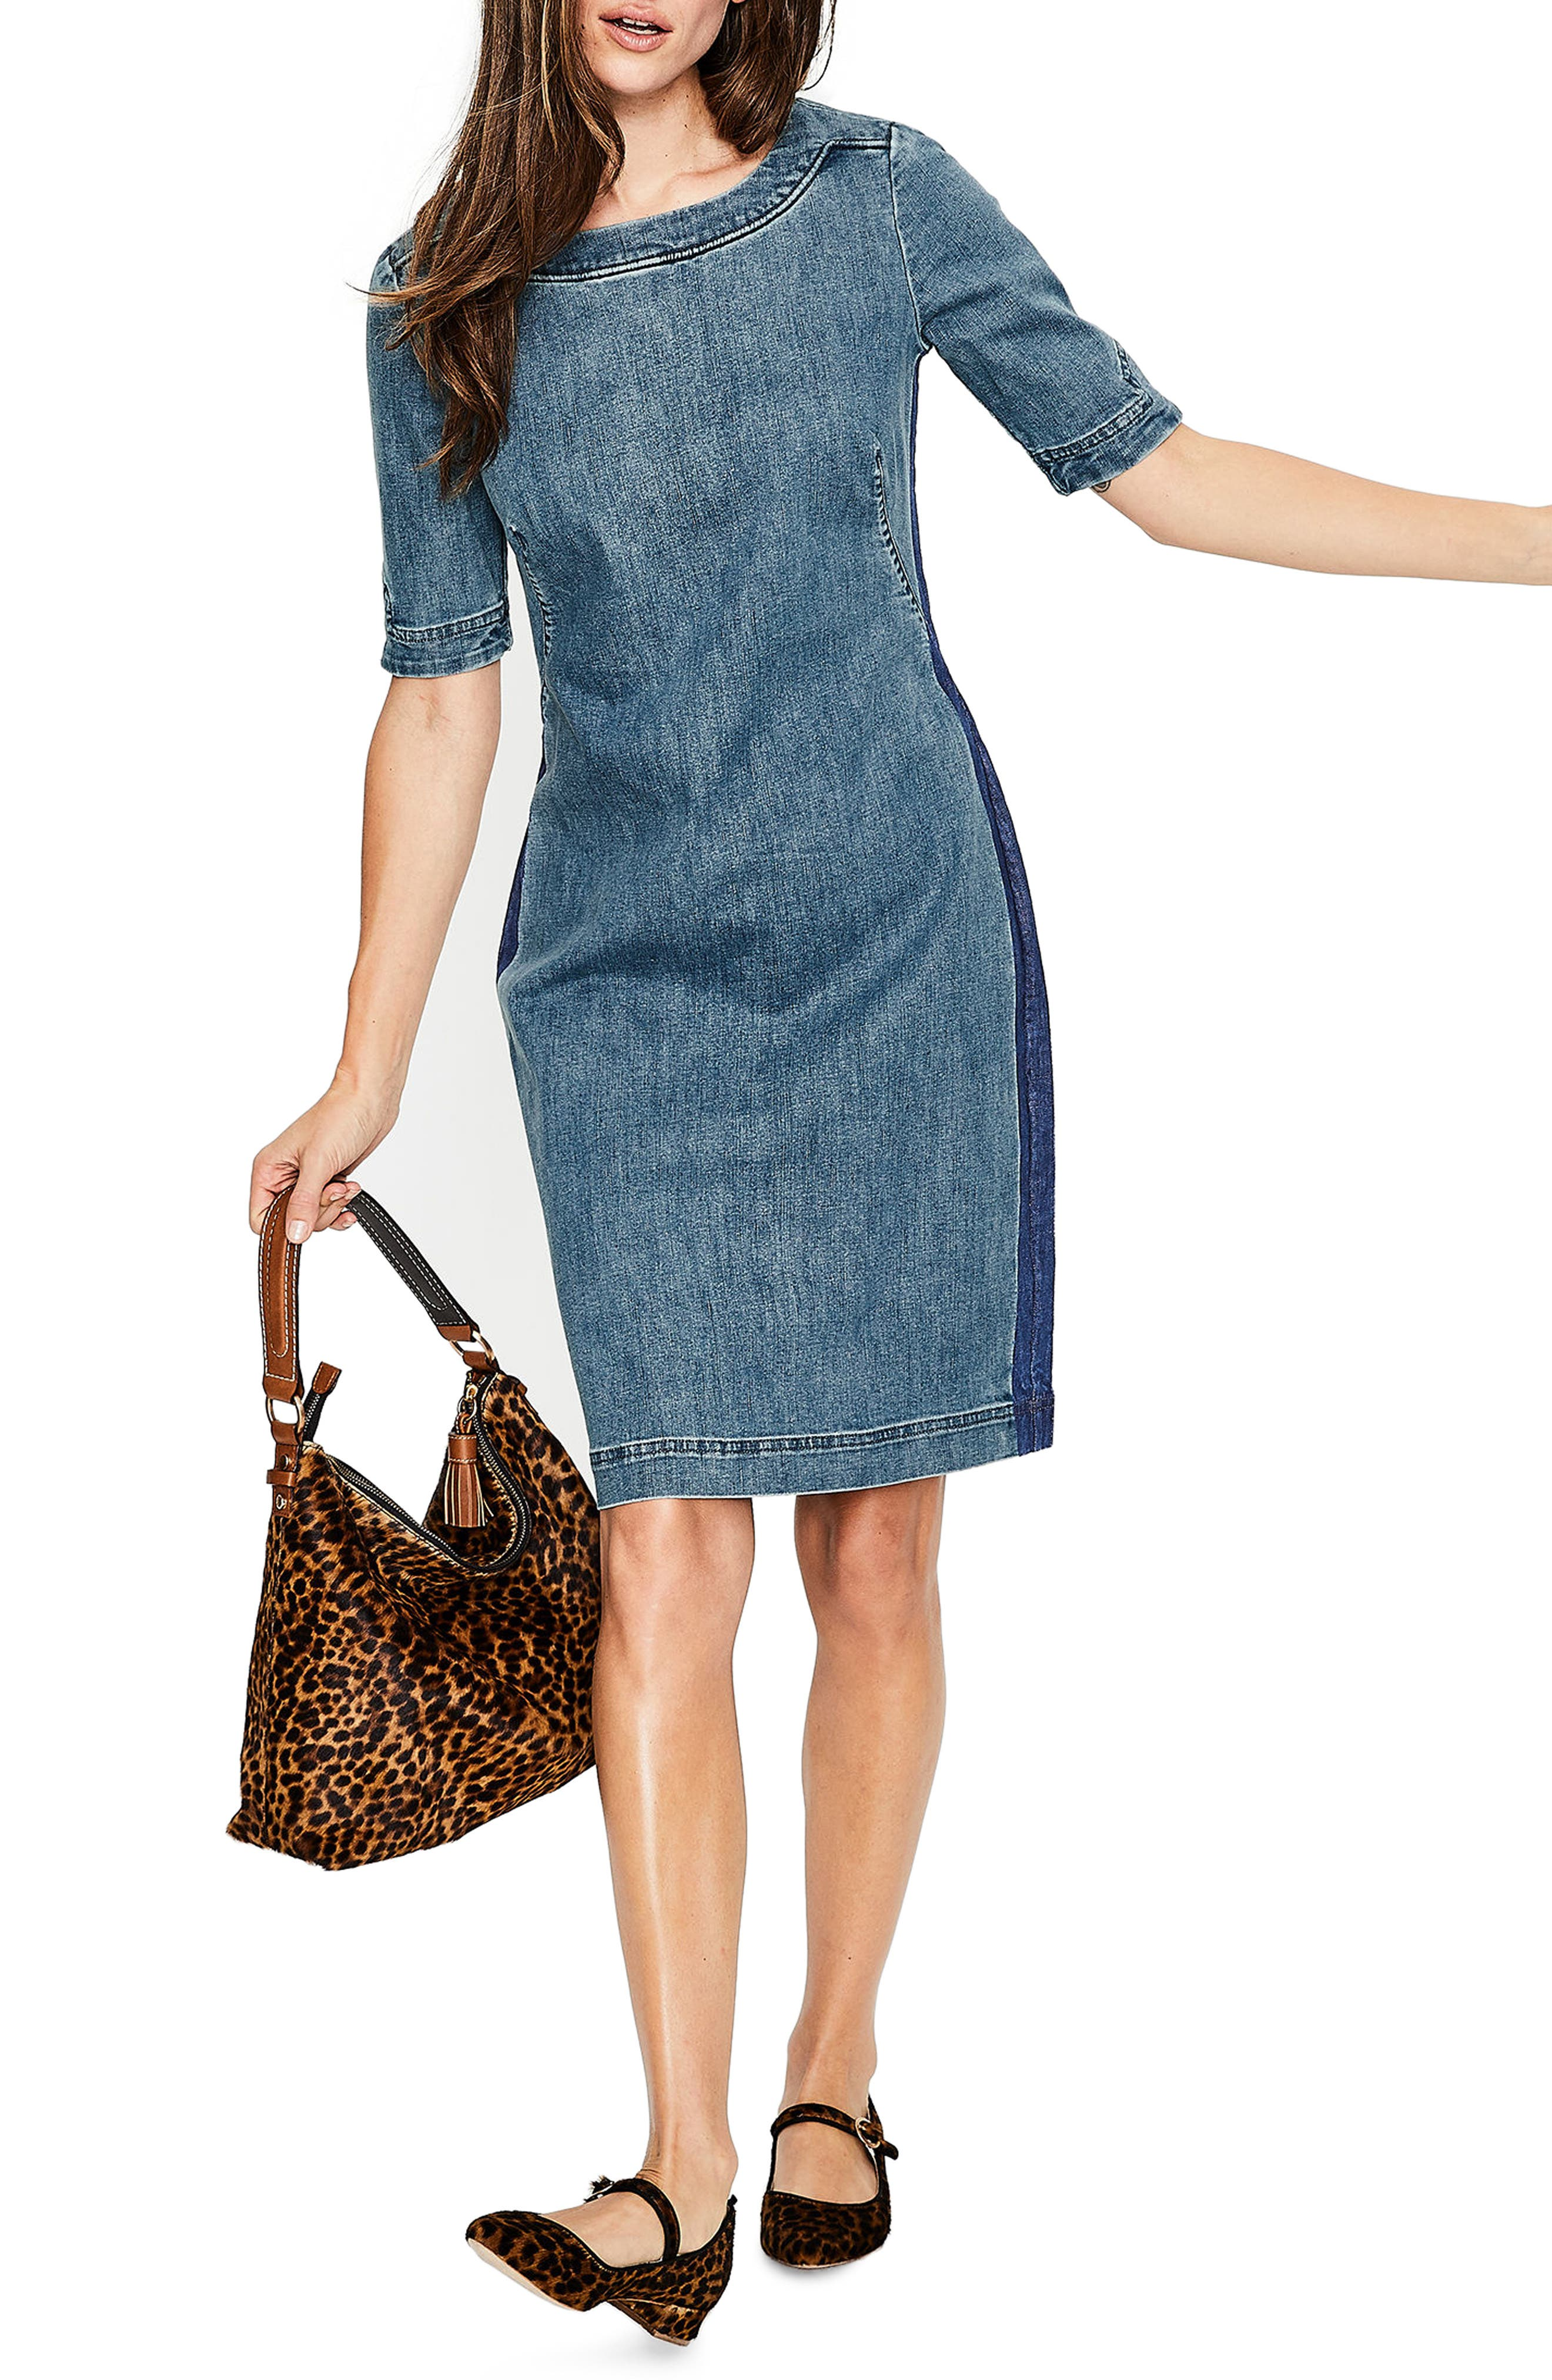 Rhea Denim Contrast Dress,                             Main thumbnail 1, color,                             Mid Vintage With Side Stripe